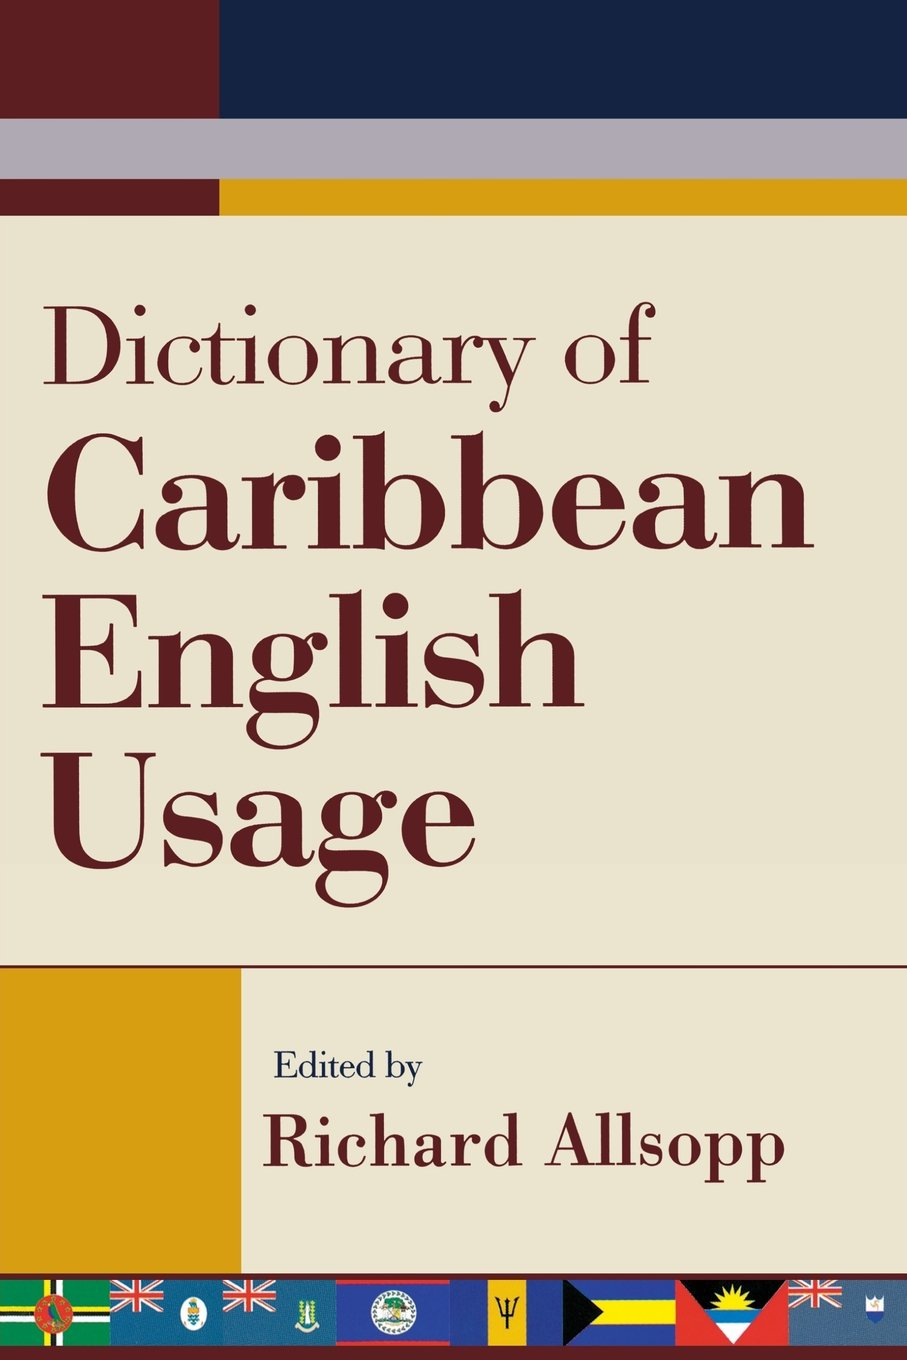 Dictionary of Caribbean English Usage with a French and Spanish Supplement:  Amazon.co.uk: Jeannette Allsopp: 9789766401450: Books